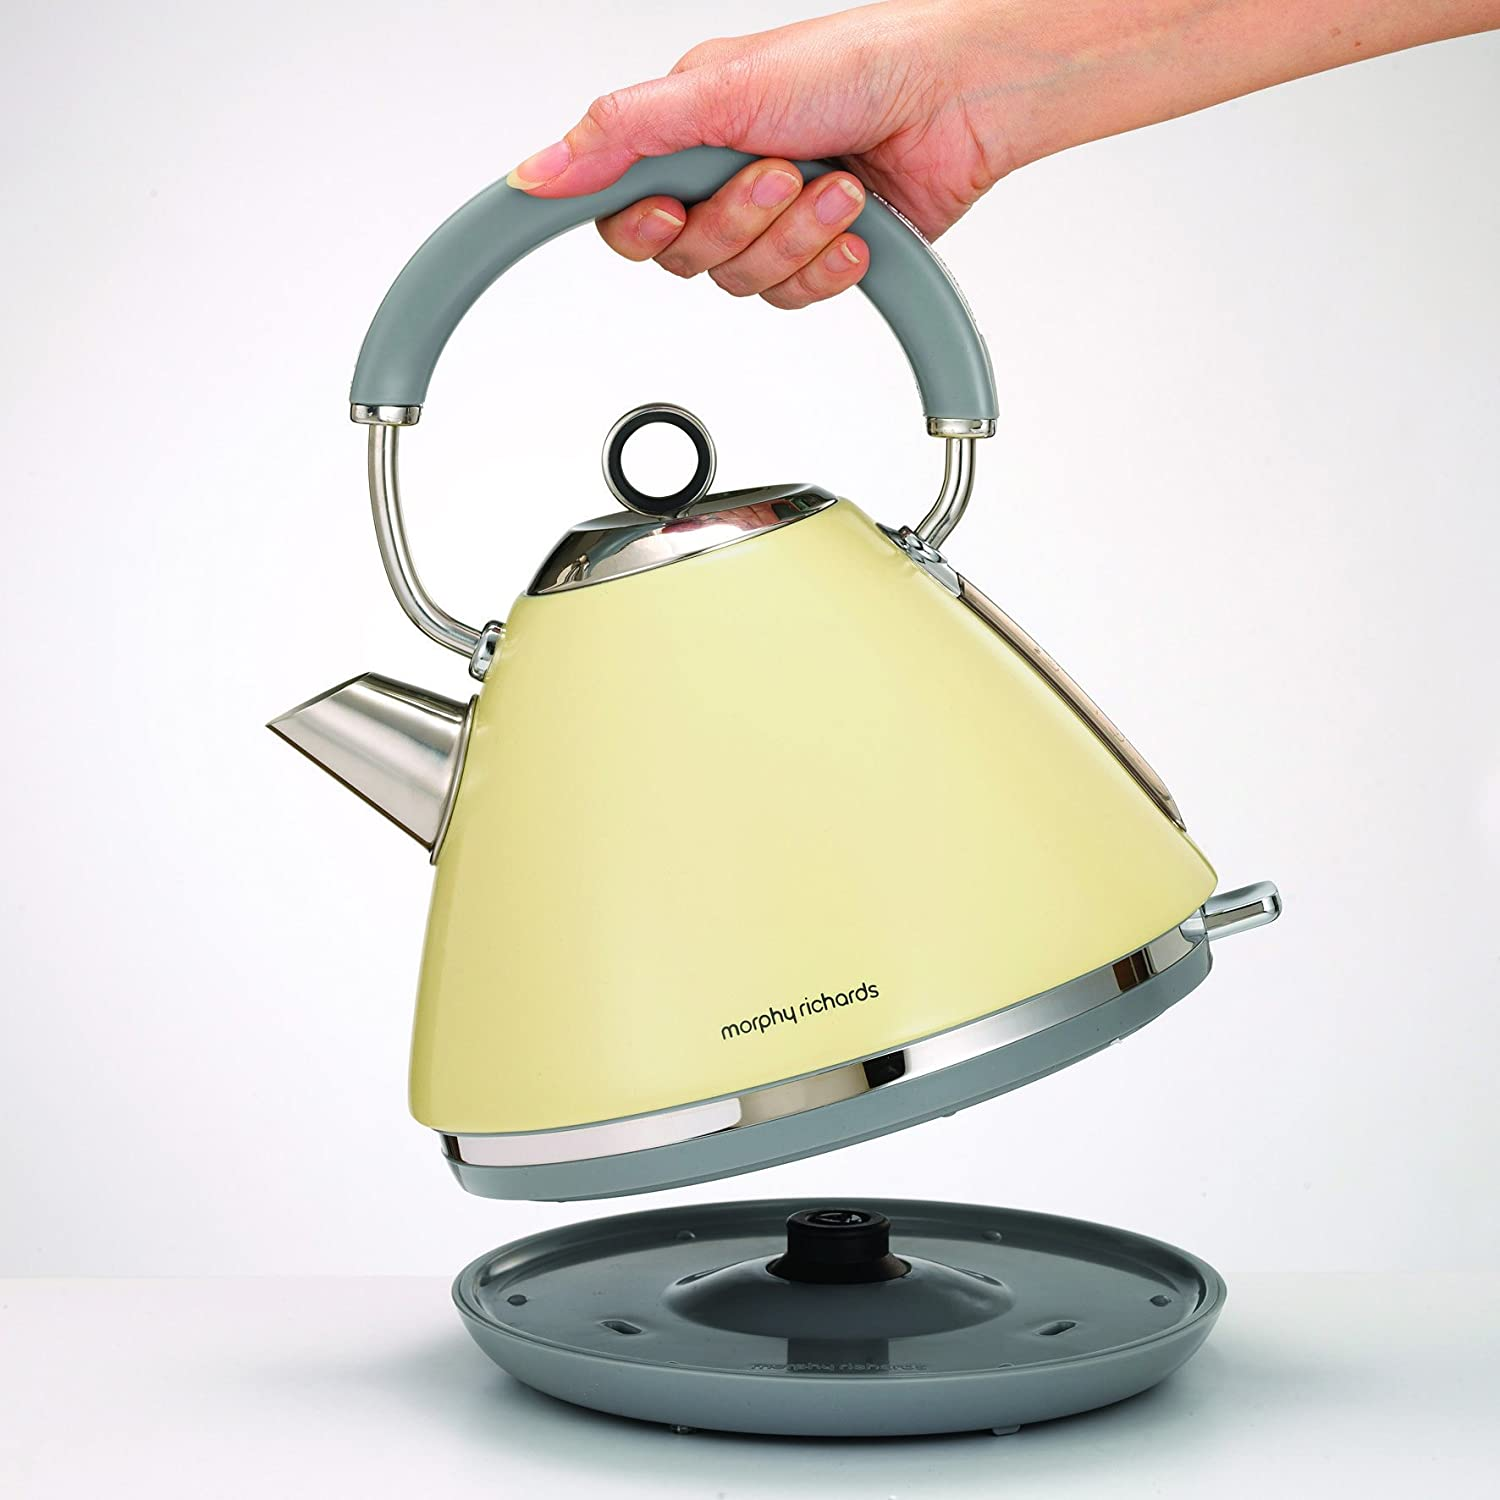 Morphy Richards 102003 Accents Pyramid